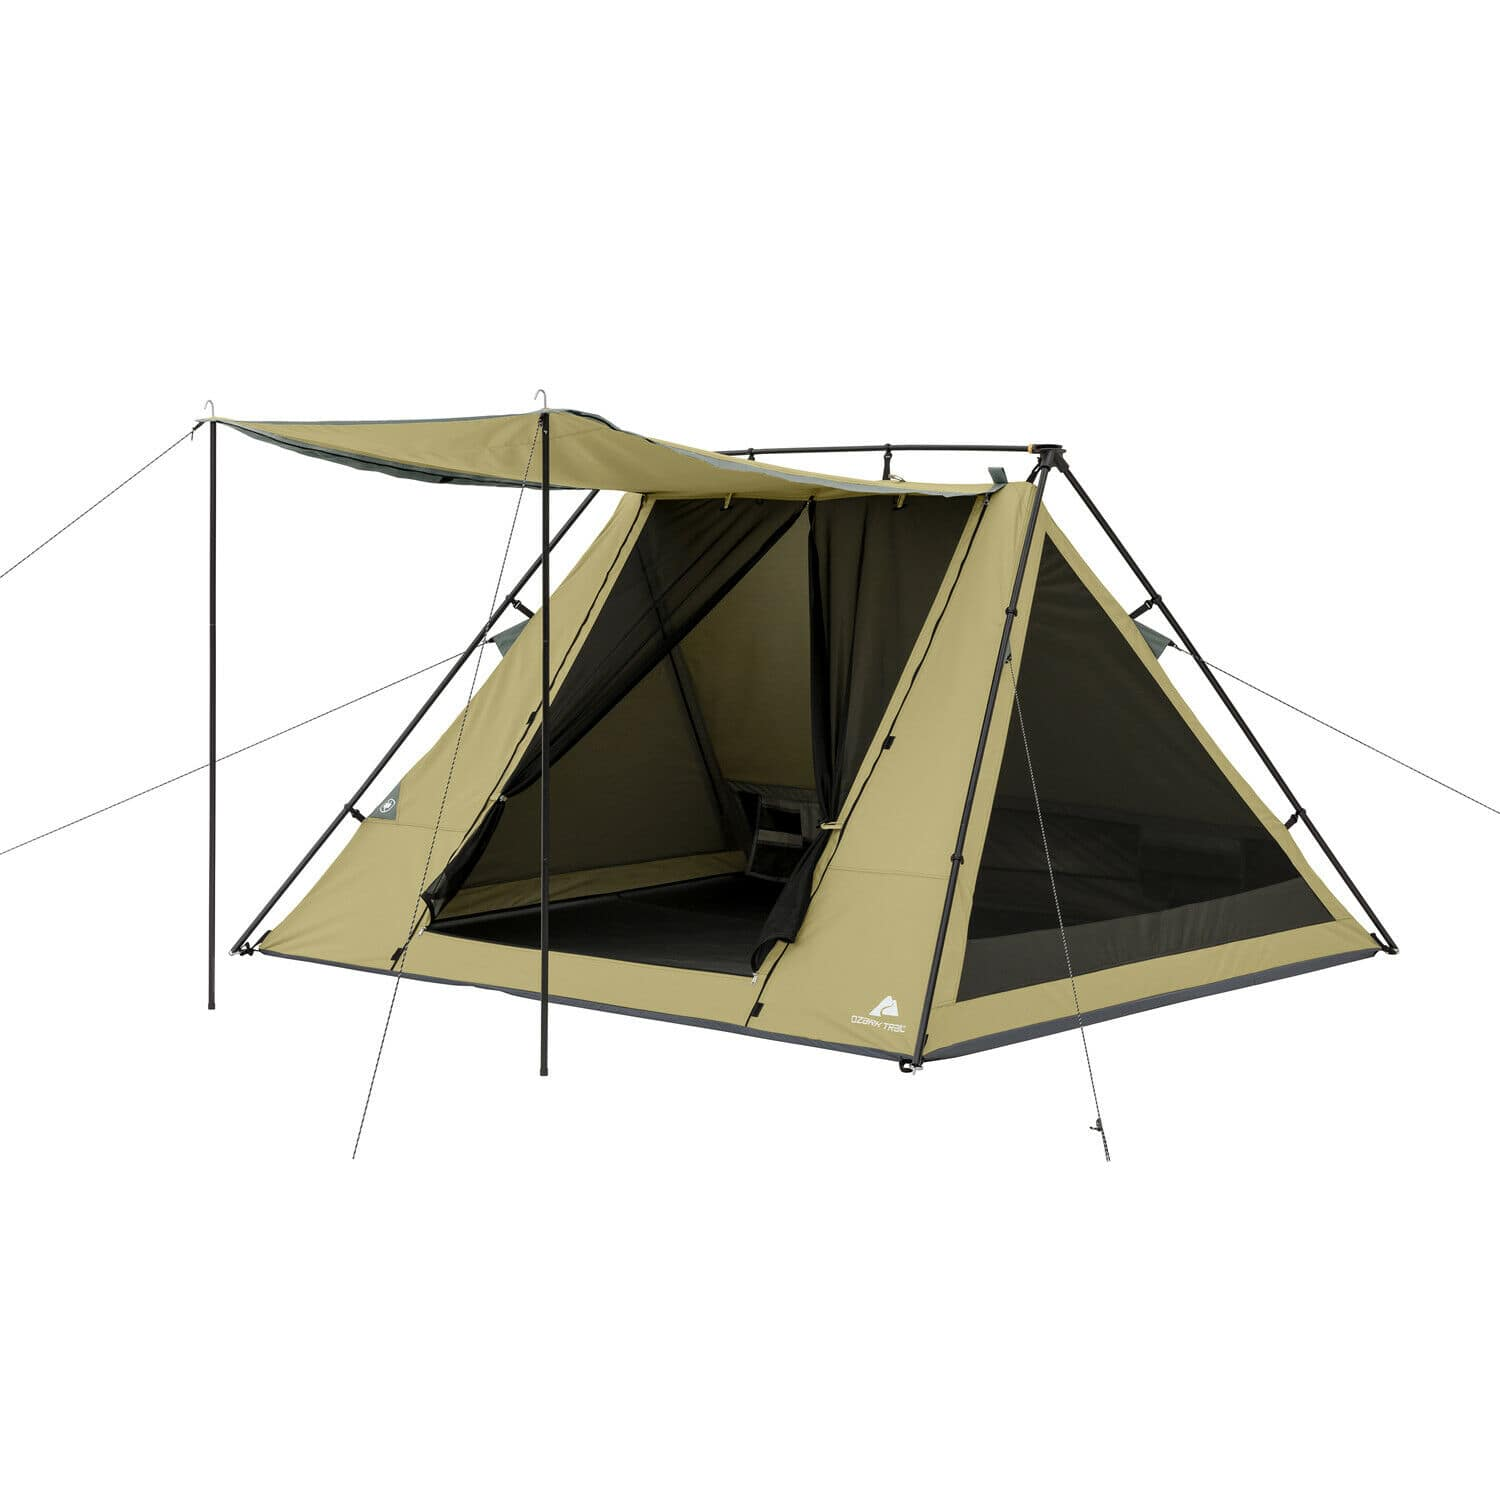 Ozark Trail 4-Person A-Frame Tent with Awning $32.30 + Free Shipping